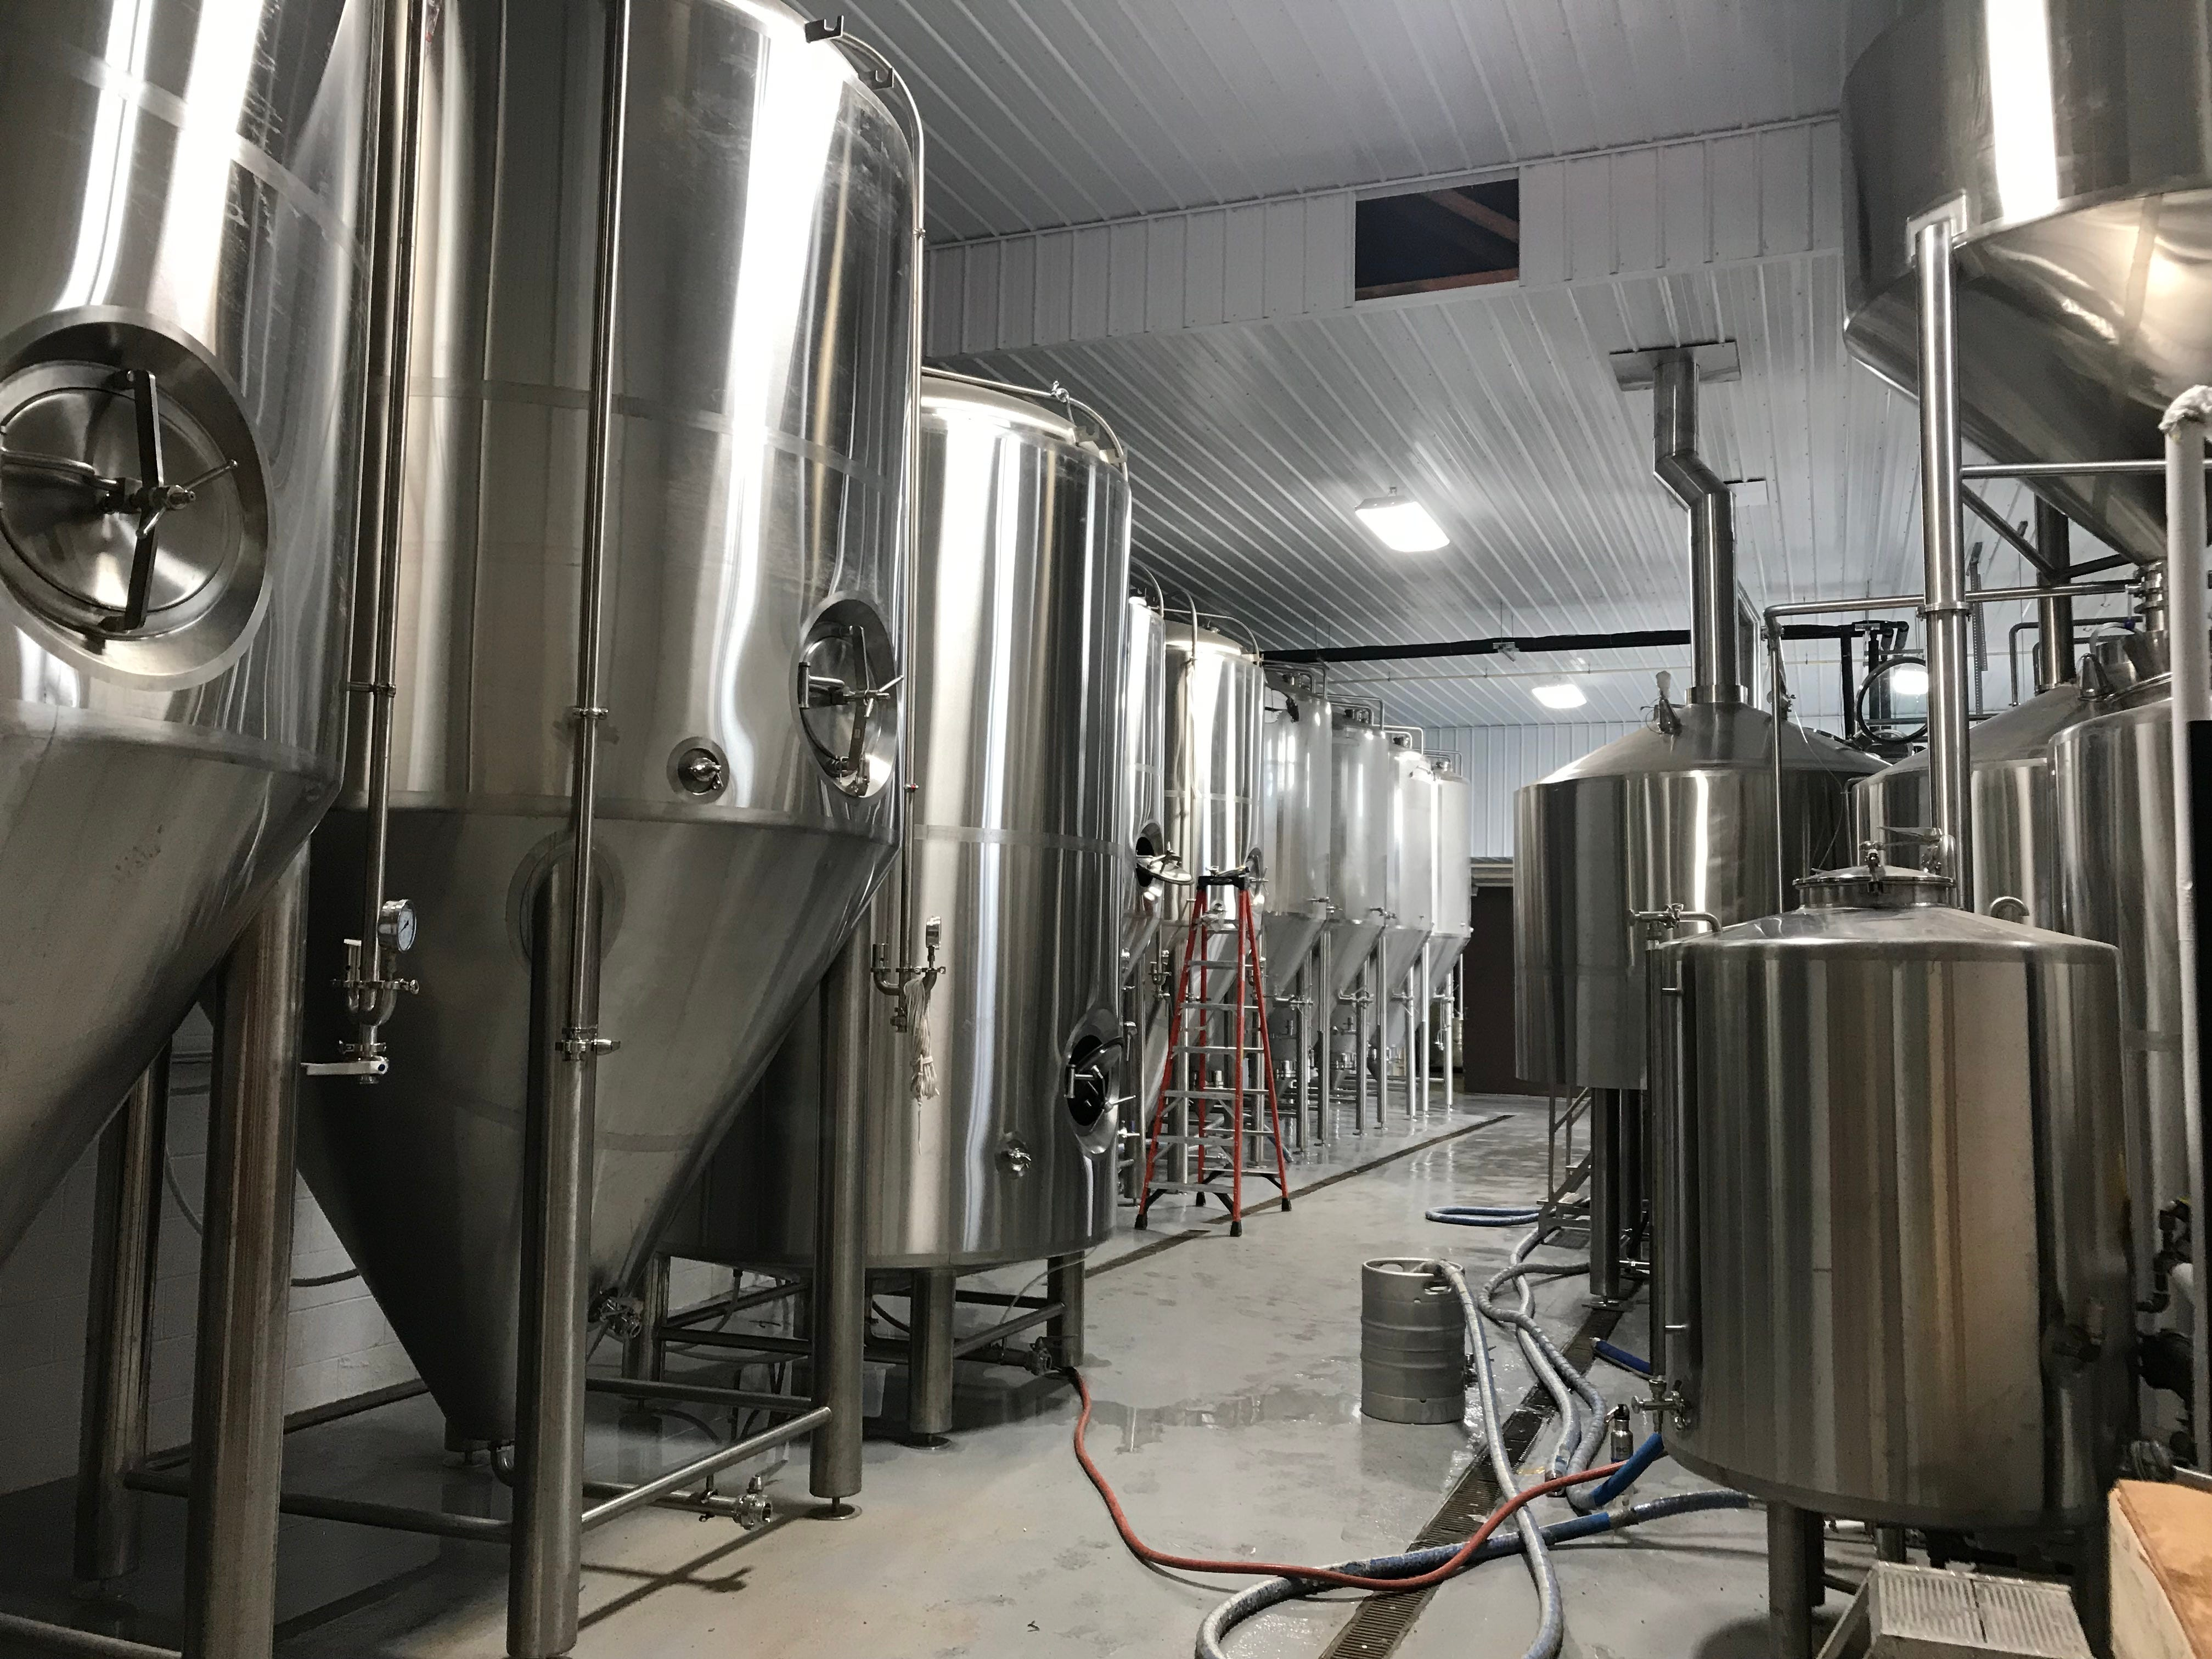 Stoneyard is jumping from a 2.5-barrel brewhouse to a 30-barrel brewhouse at the new production space.